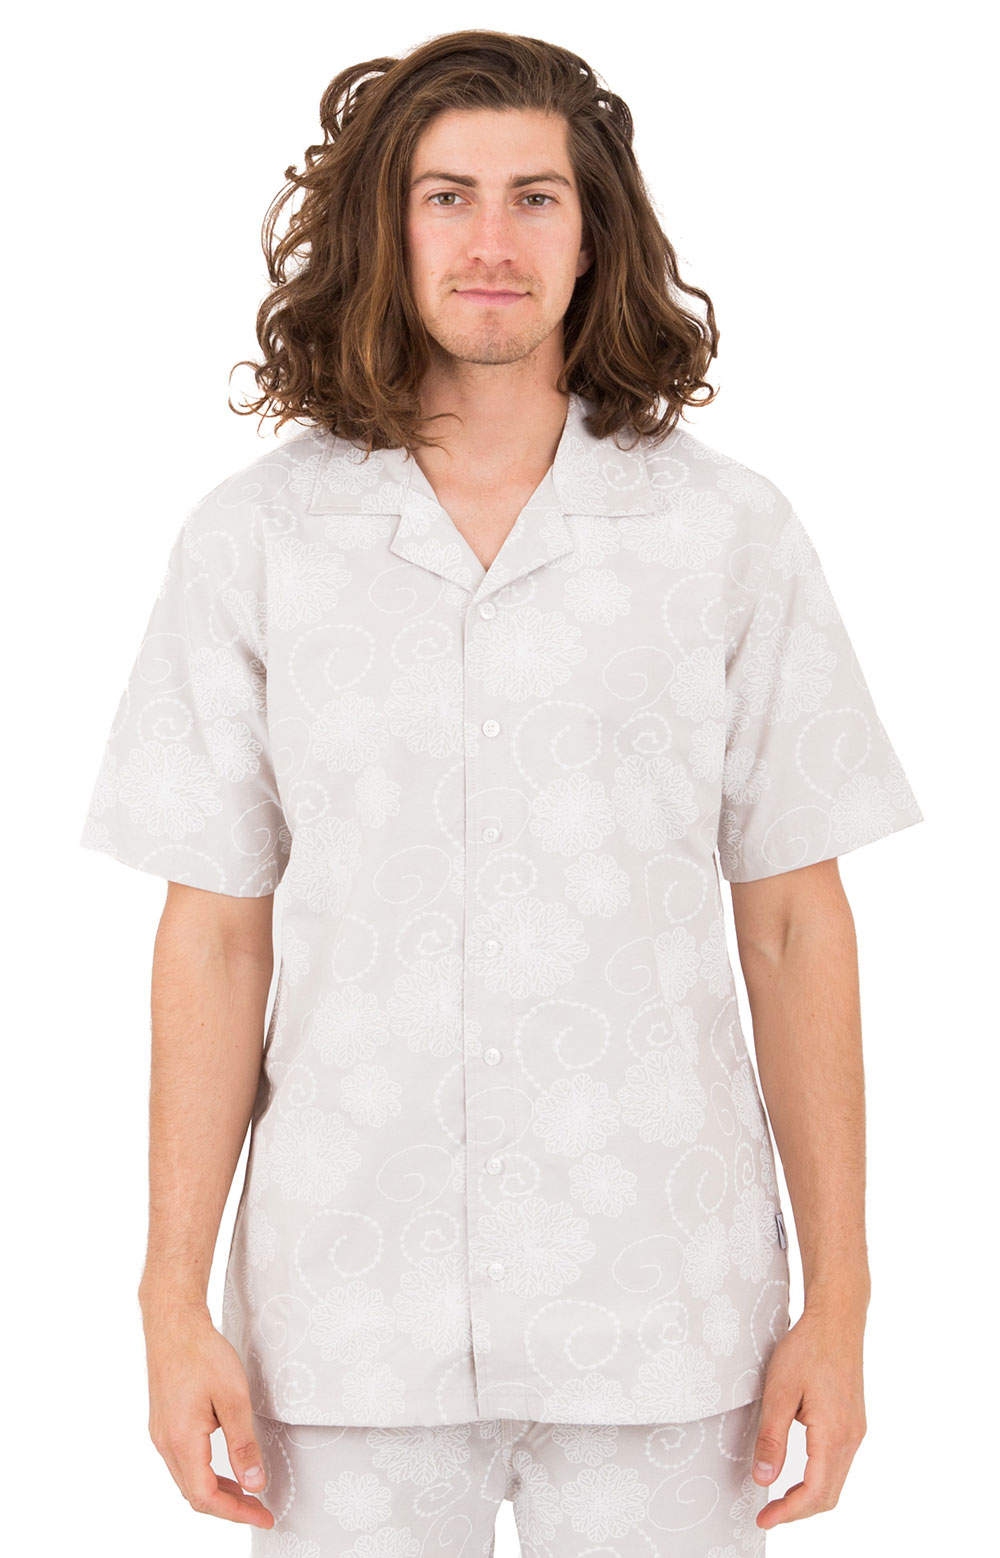 Coen Button-Up Shirt - White